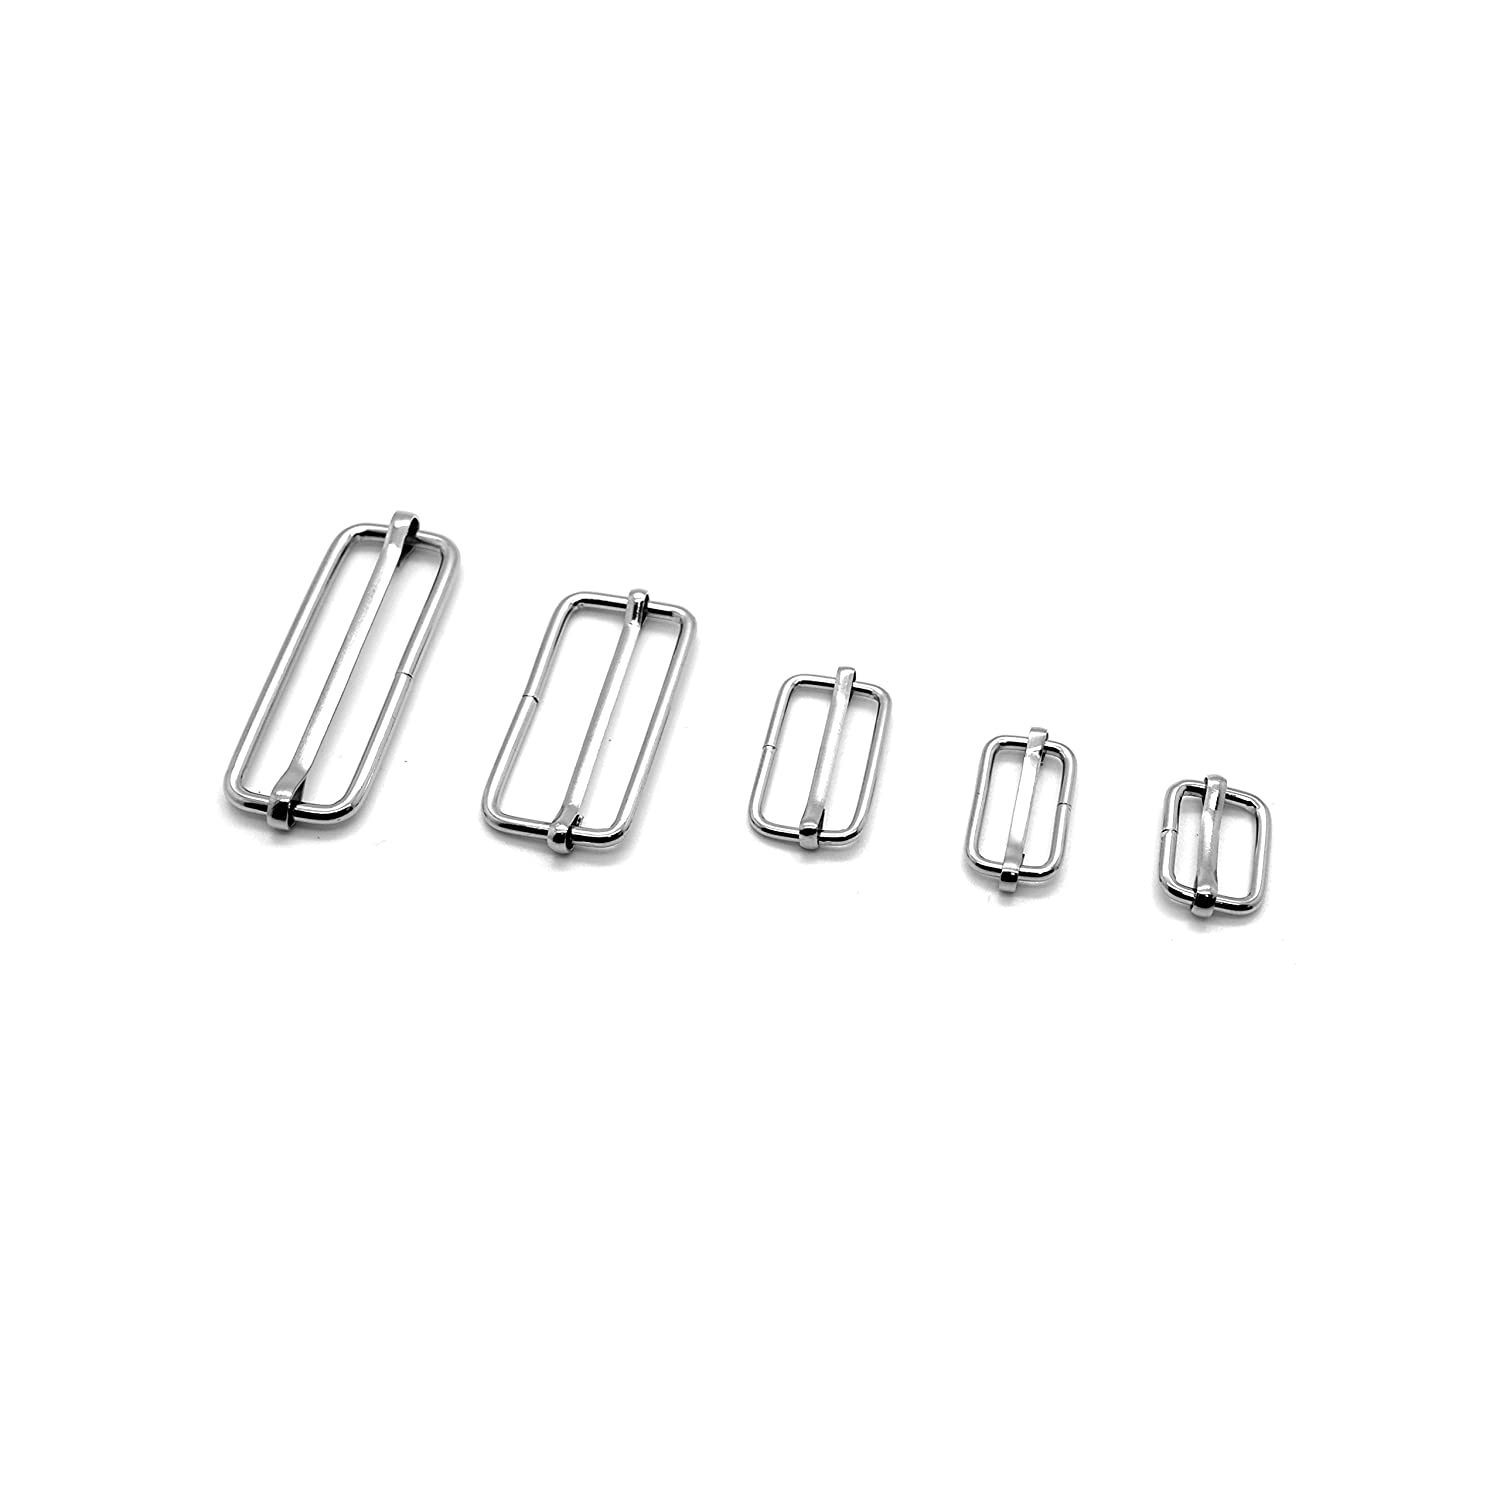 10 x Metal Sliding Bars Buckles Straps for Webbing Strap Tape Craft (16mm)